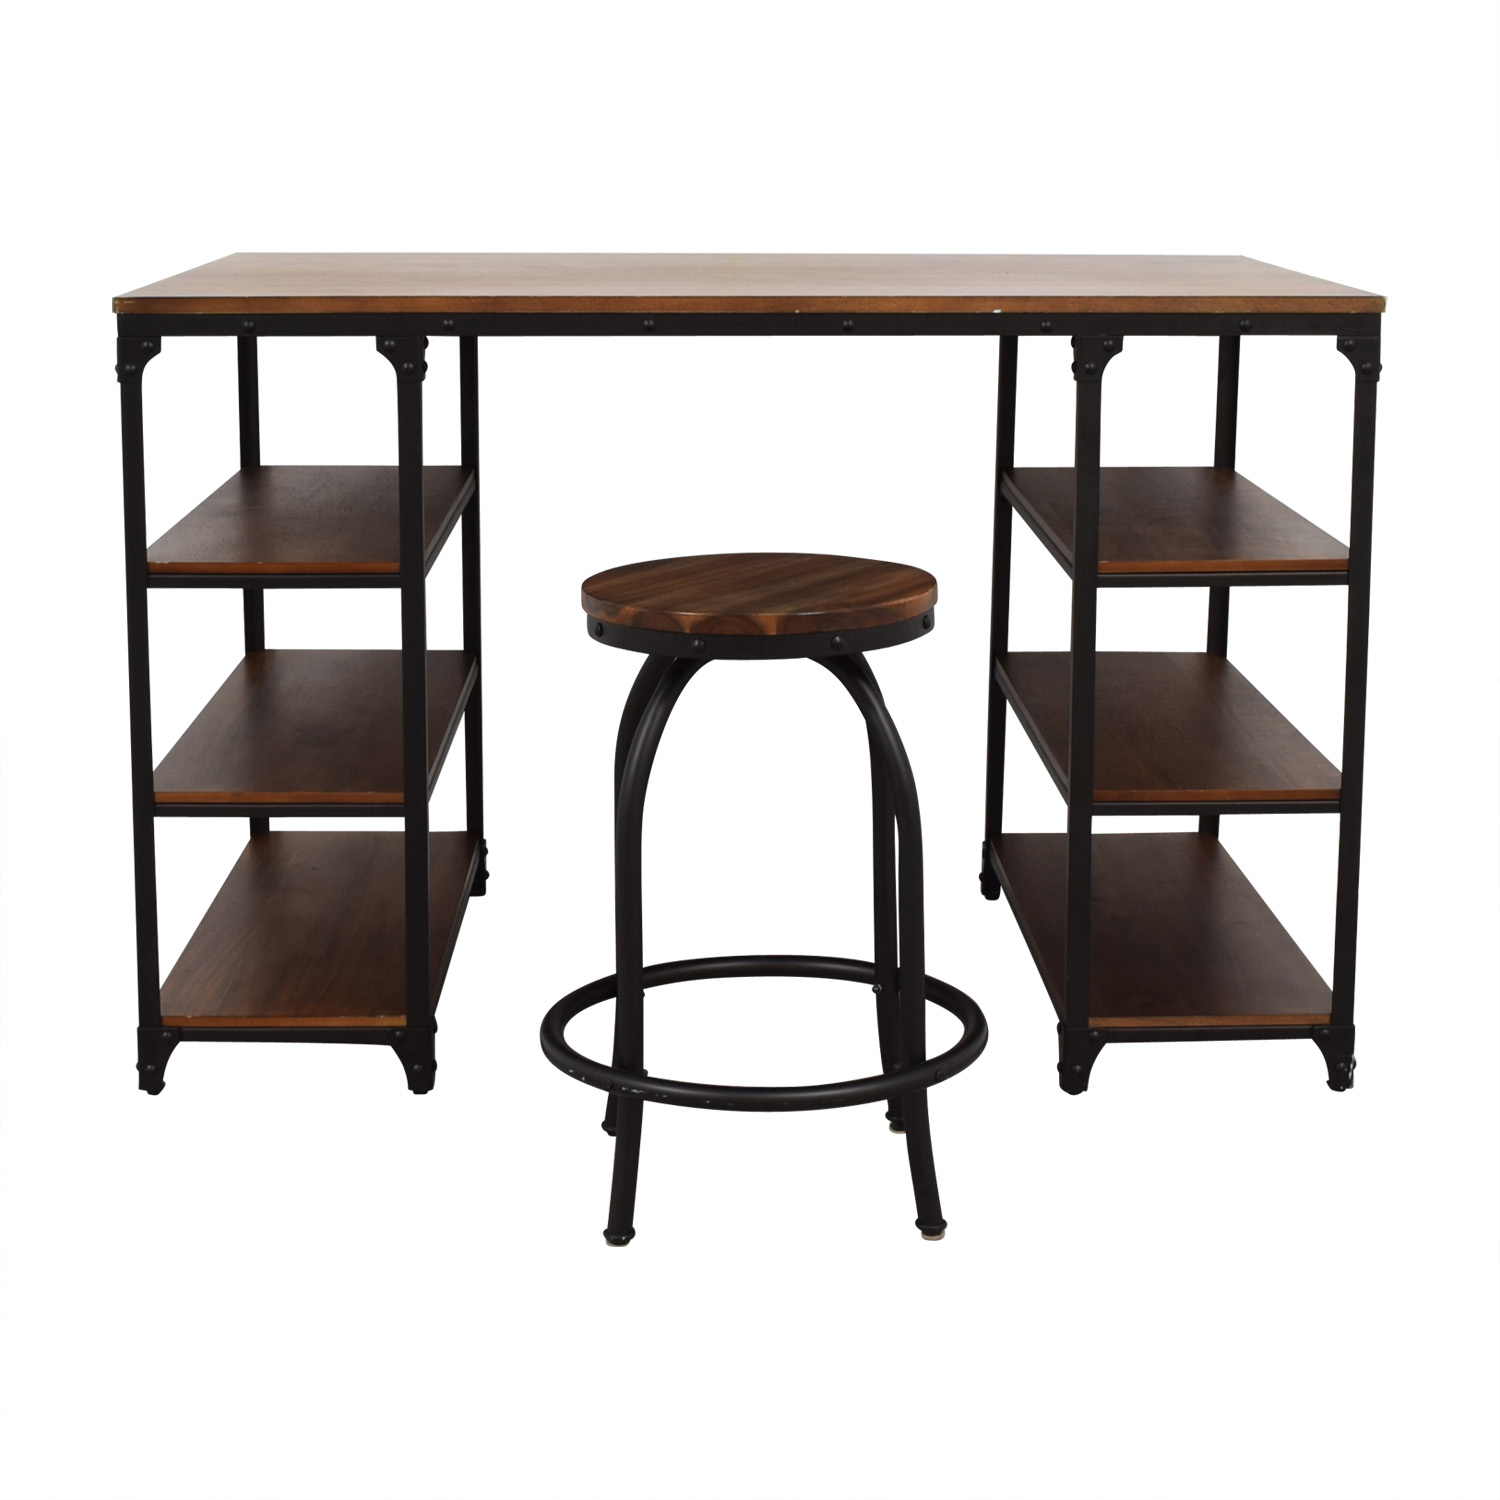 Raymour & Flanigan Lorimer Counter Height Writing Desk with Stool / Tables